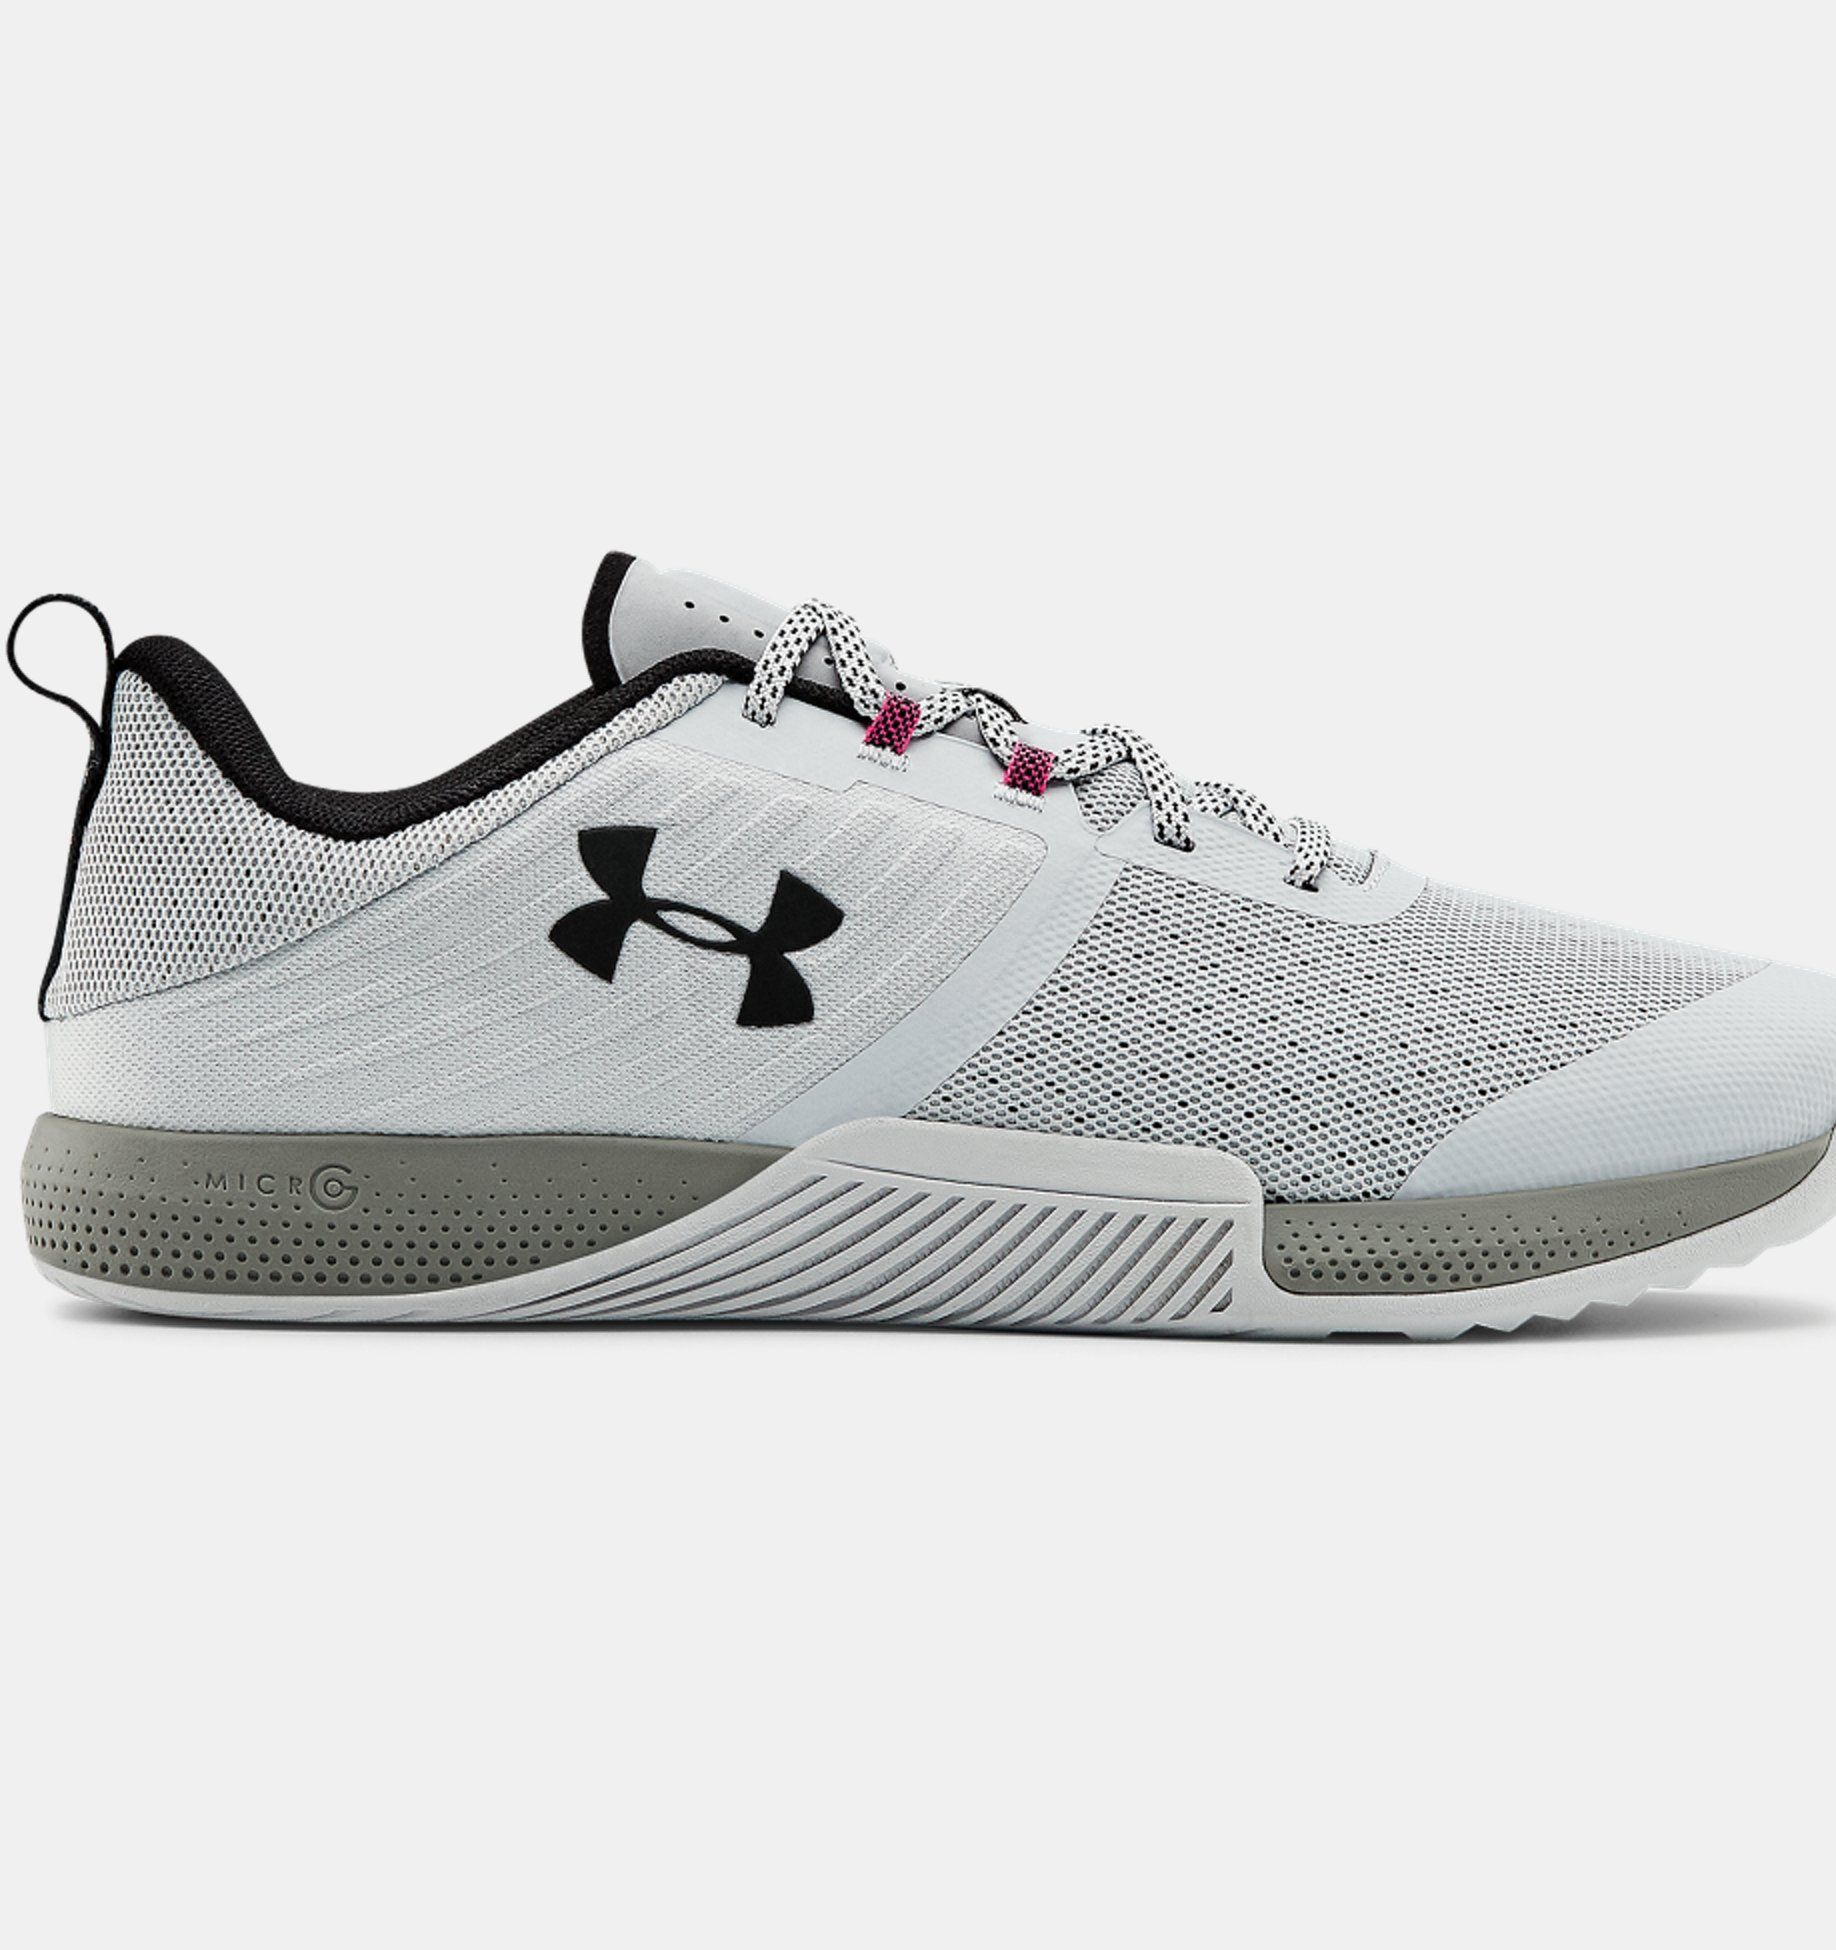 Deals in Under Armour's Outlet Sale